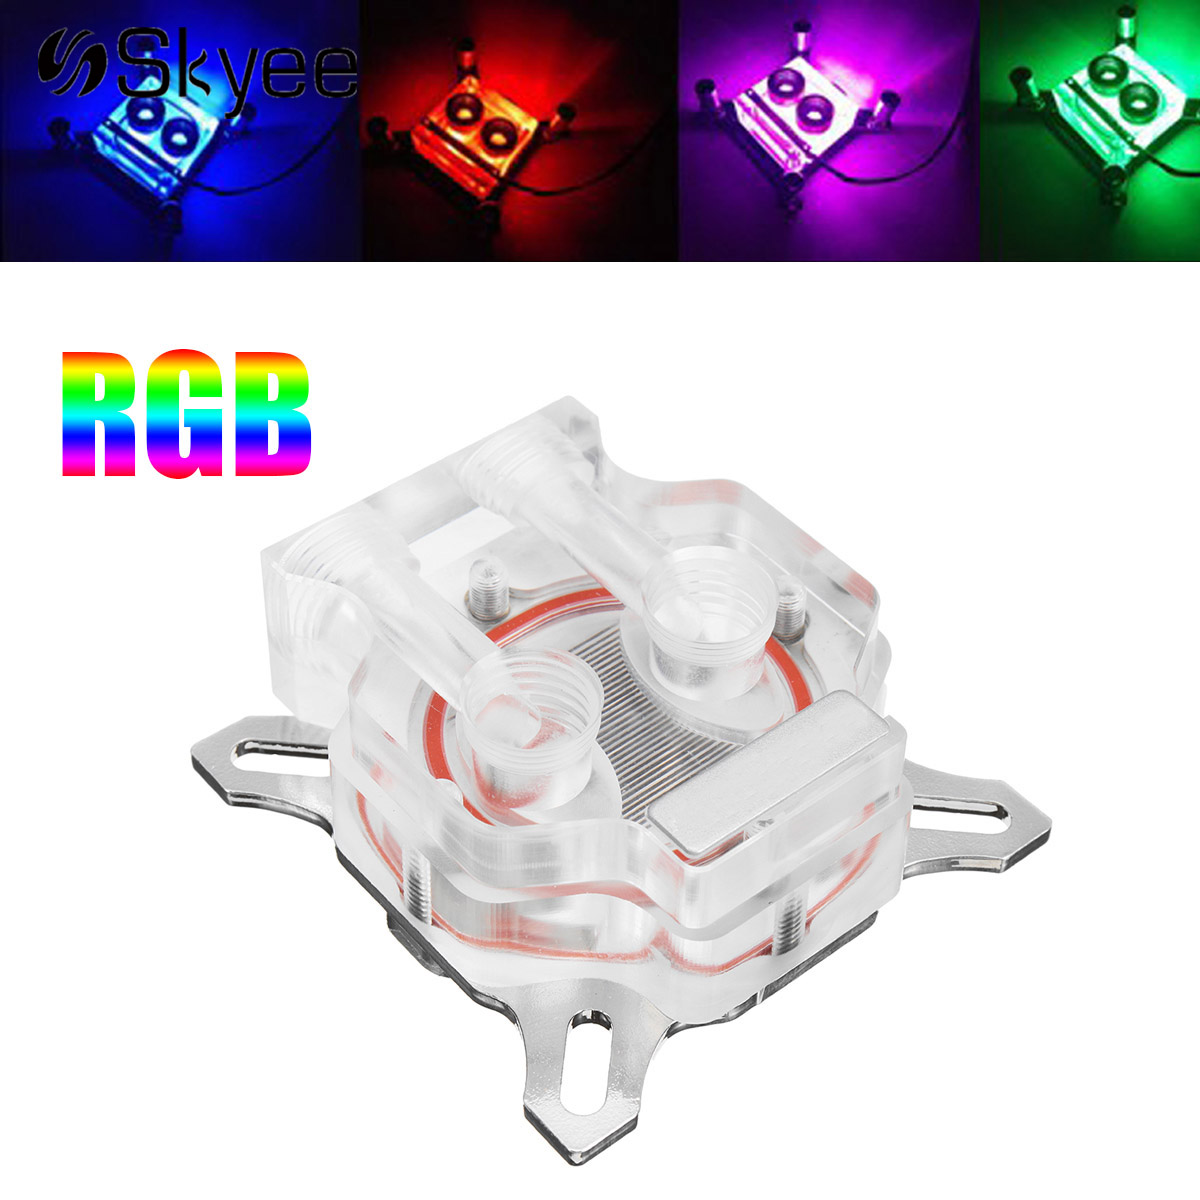 RGB Water Cooling Block Computer Video Card GPU Core Cover Water Heatsink Suitable for 43mm-53mm Hole Pitch VGA-TMD computador cooling fan replacement for msi twin frozr ii r7770 hd 7770 n460 n560 gtx graphics video card fans pld08010s12hh